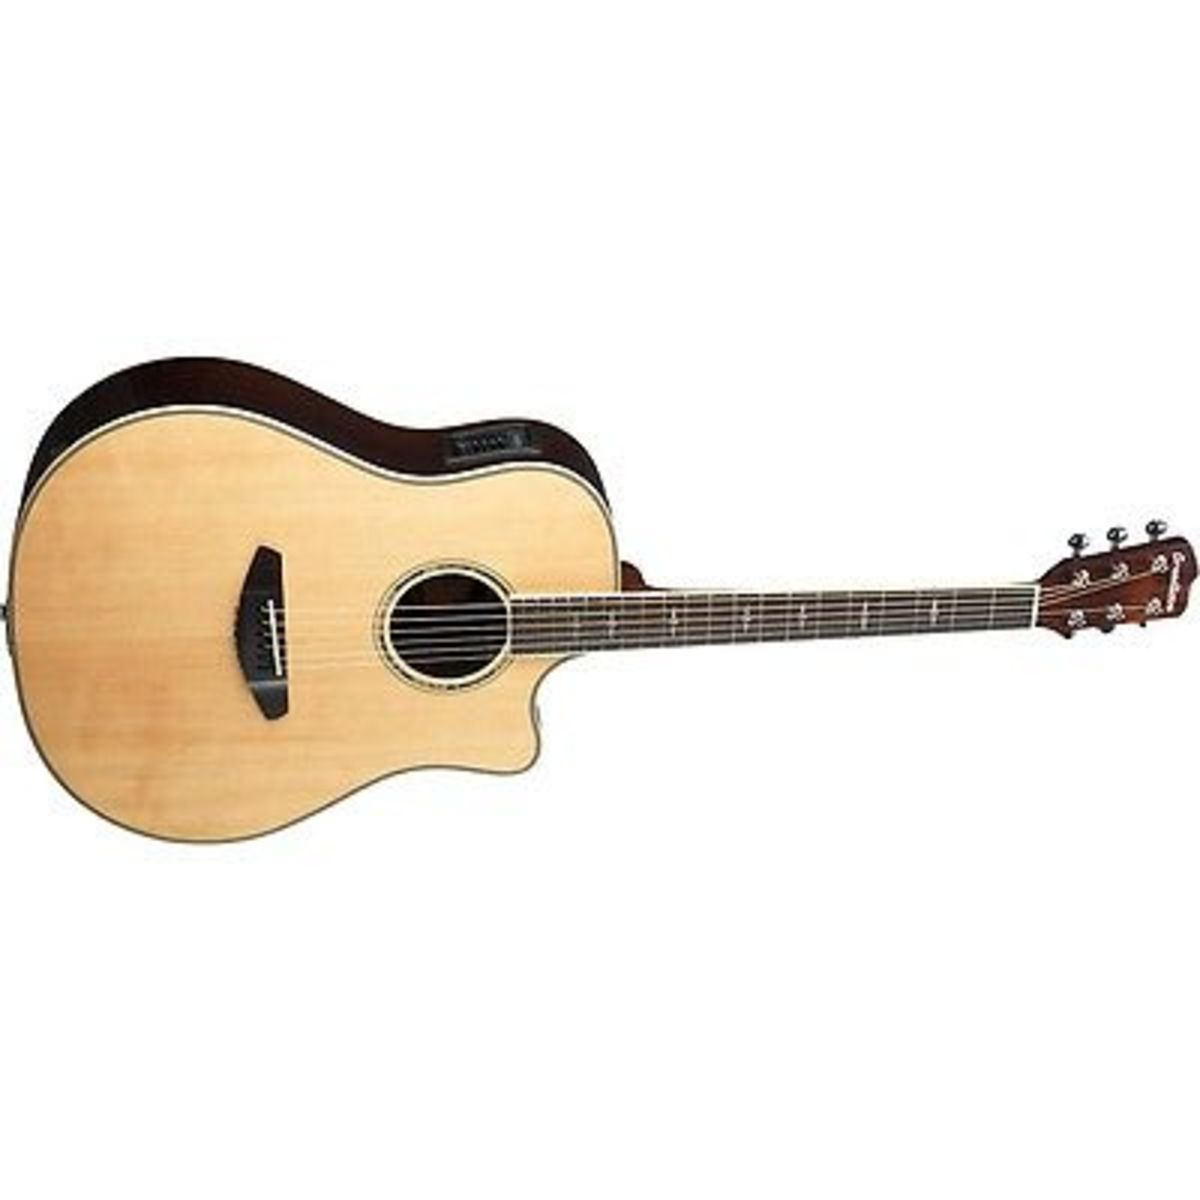 Breedlove 2015 Sitka Spruce Top Stage Dreadnought Acoustic-Electric Guitar  Natural